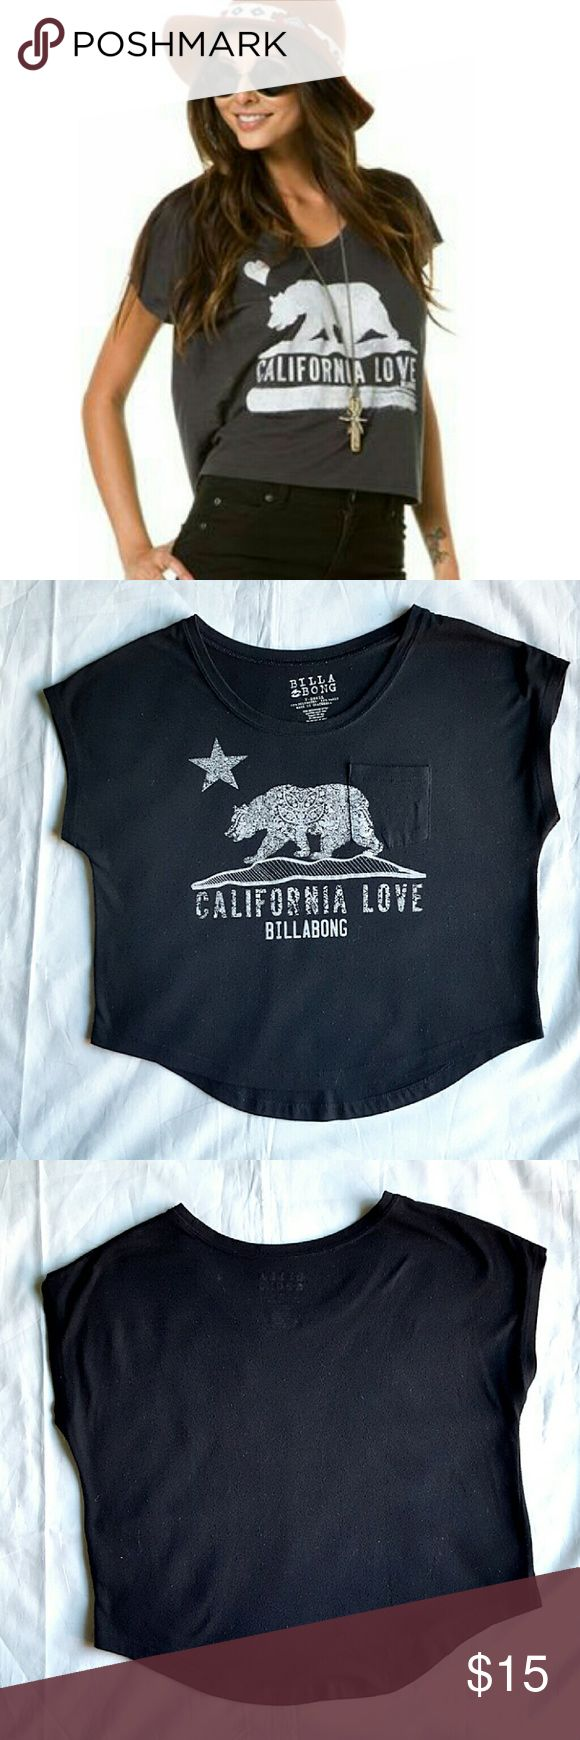 Billabong crop top Black California Love crop top. Loose fit, front pocket, artistic decorative bear and star in white. Preloved in really good condition.  *the cover photo is not the actual top, but very similar,  posted for style purpose only. Billabong Tops Crop Tops